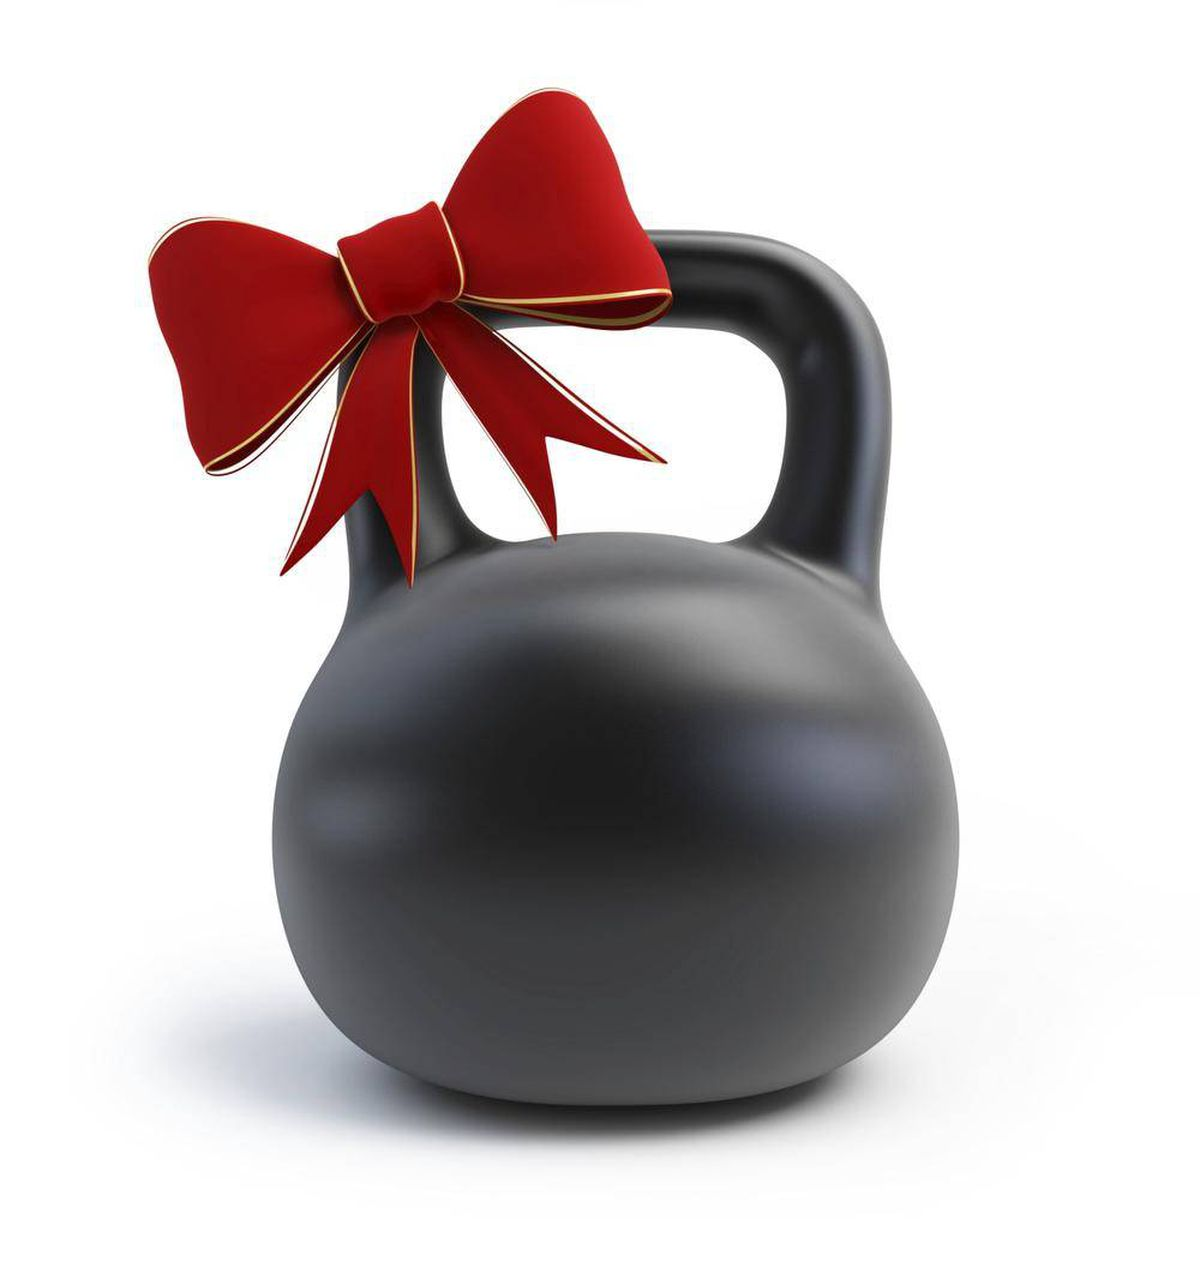 Fitness Bands Vancouver: Mom Wants Some Fitness Gifts For Christmas. What Do I Buy